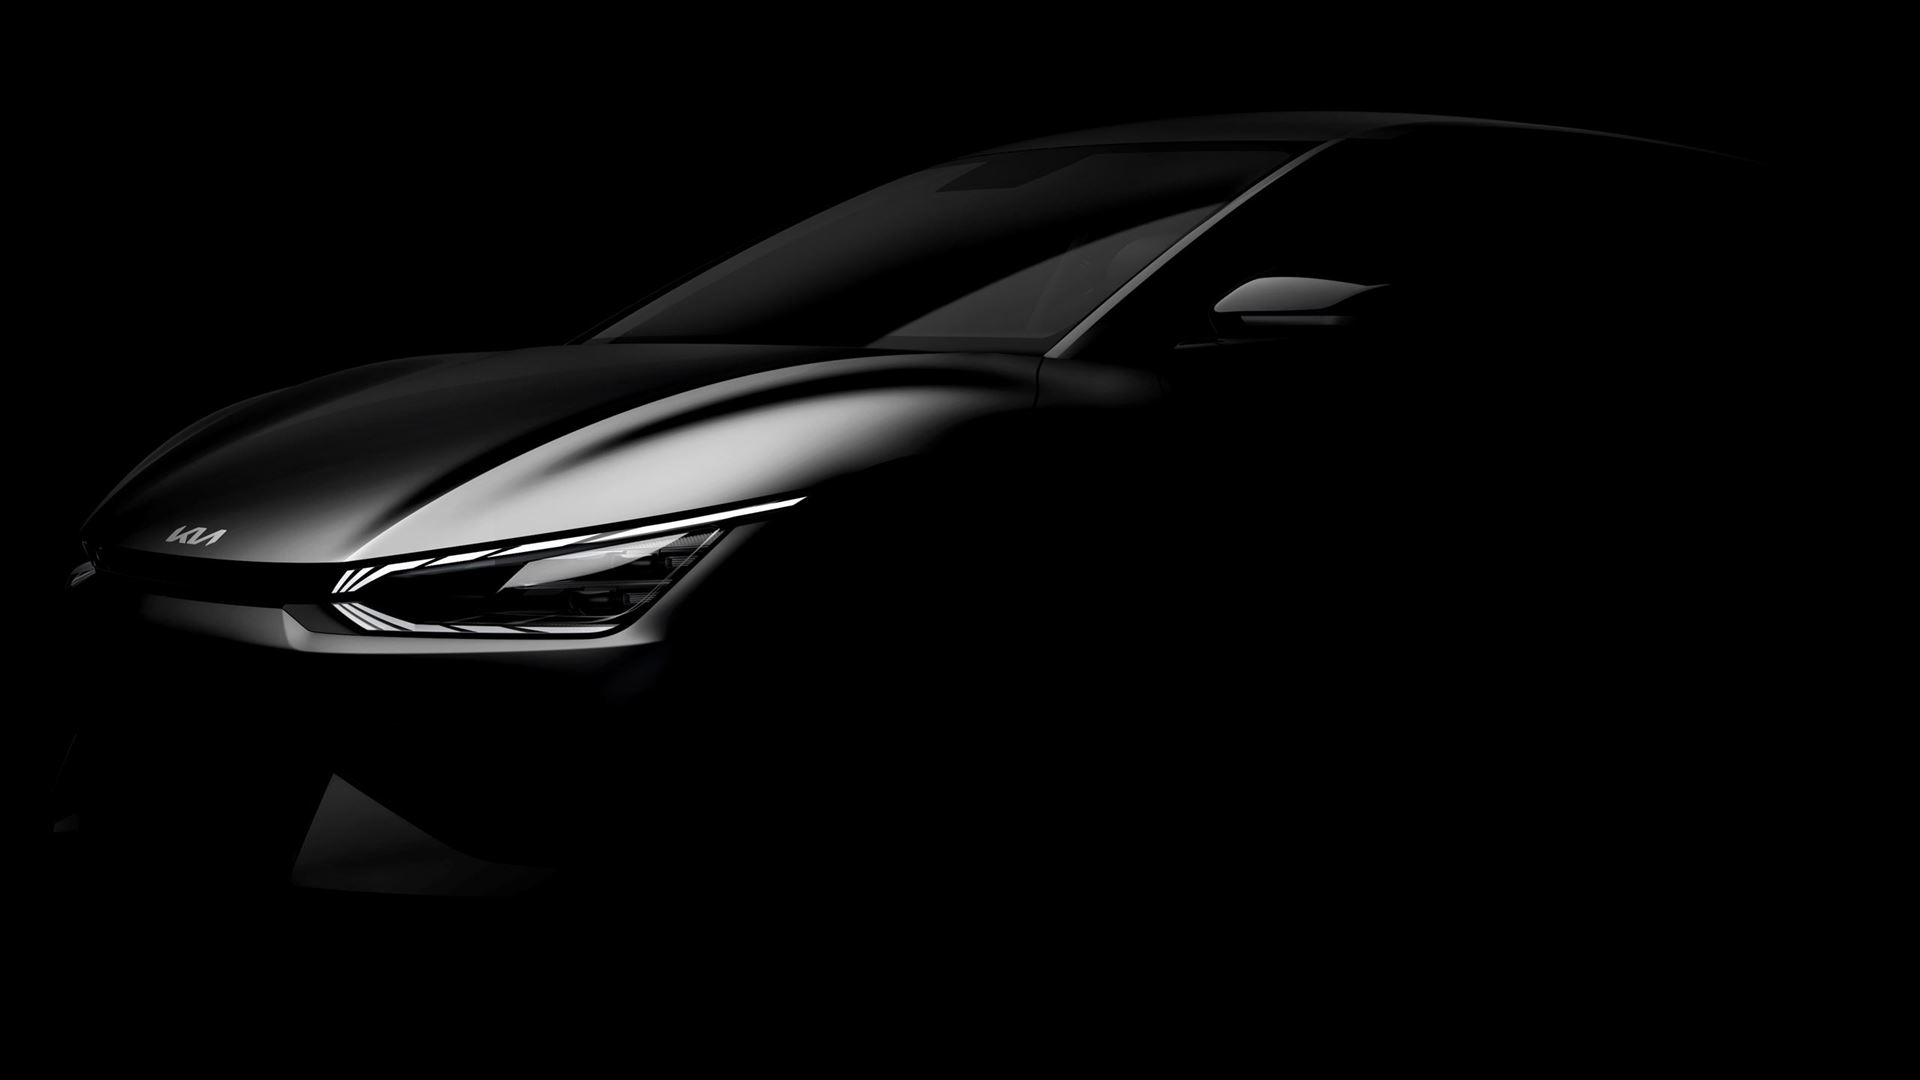 Kia teases EV6, its first dedicated EV - Image 3